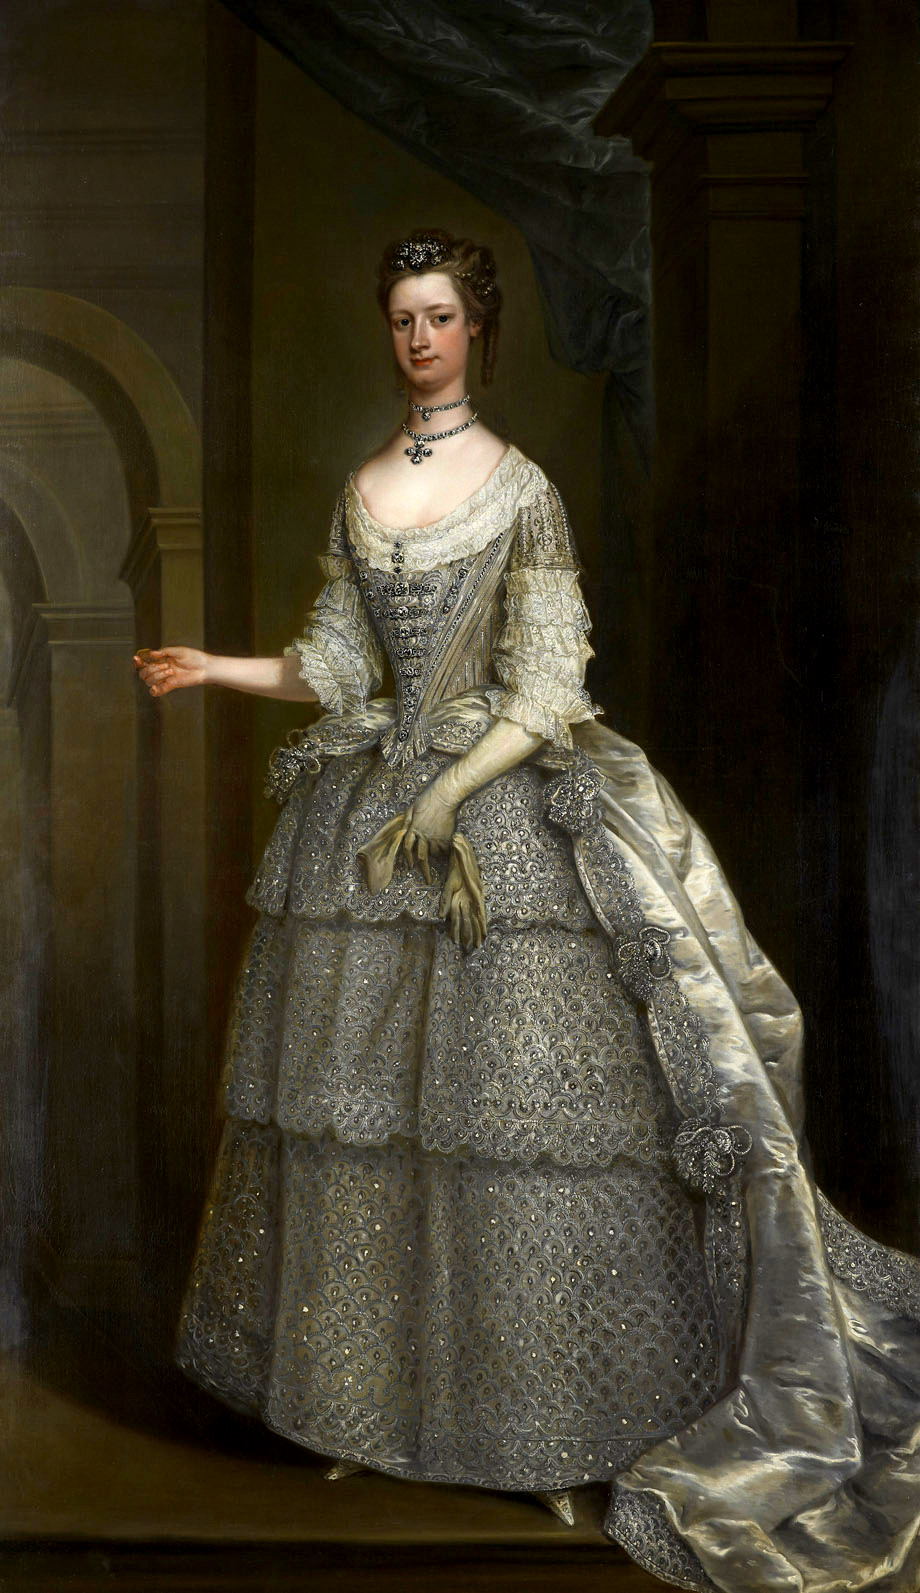 of Louis XV - 1715 - 1774 ...Fashion abruptly shifted when Louis XIV ...